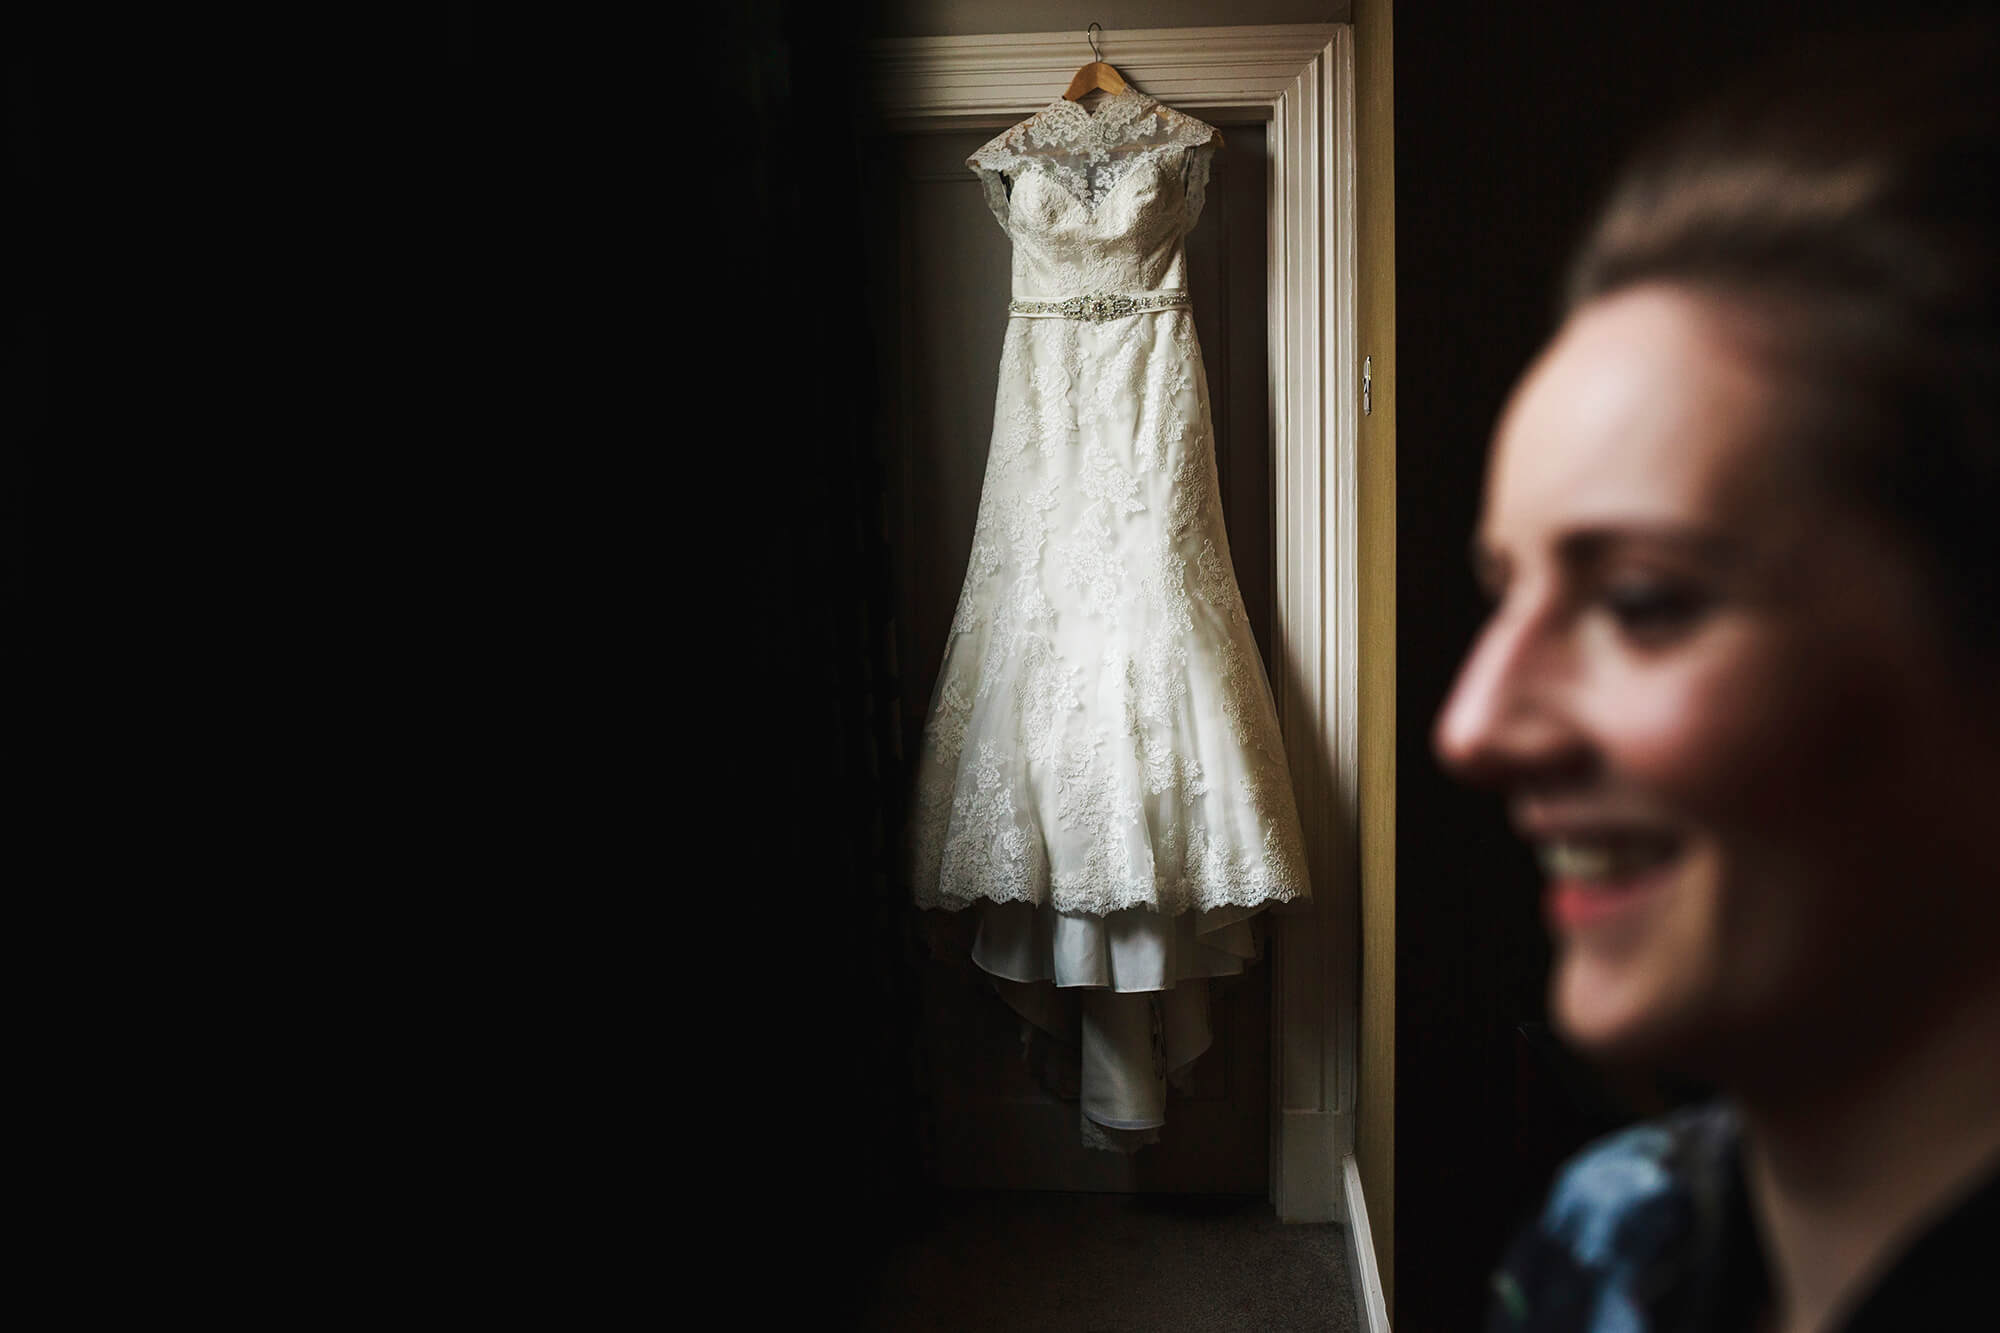 brides gets ready with her dress hanging in background